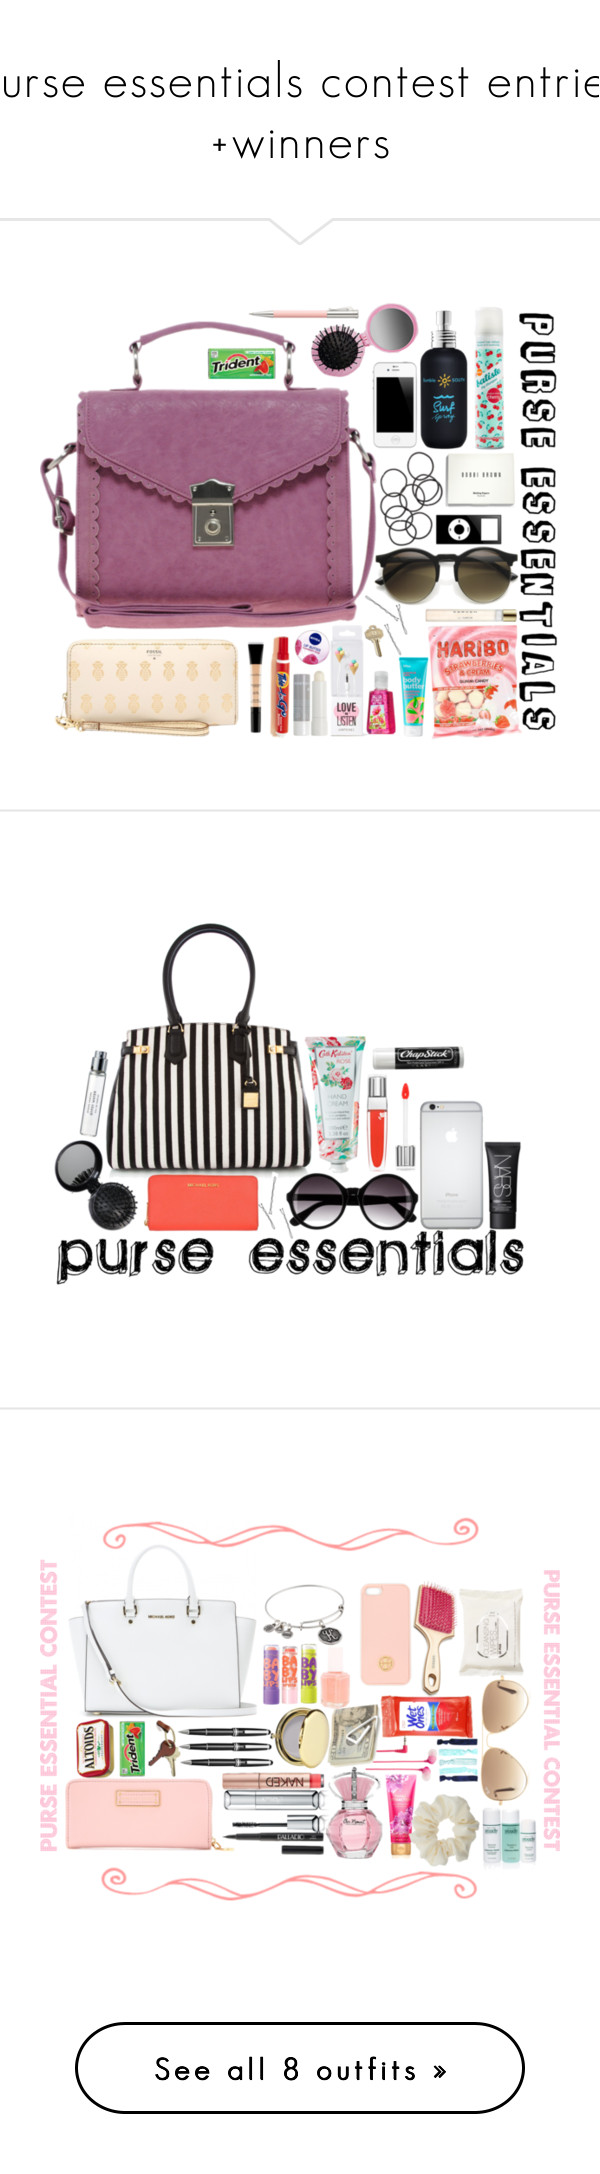 """""""purse essentials contest entries +winners"""" by fashionistaofthefuture ❤ liked on Polyvore featuring contestwitherin, moda, Bumble and bumble, Batiste, Korres, ASOS, FOSSIL, Forever 21, Nivea e H&M"""